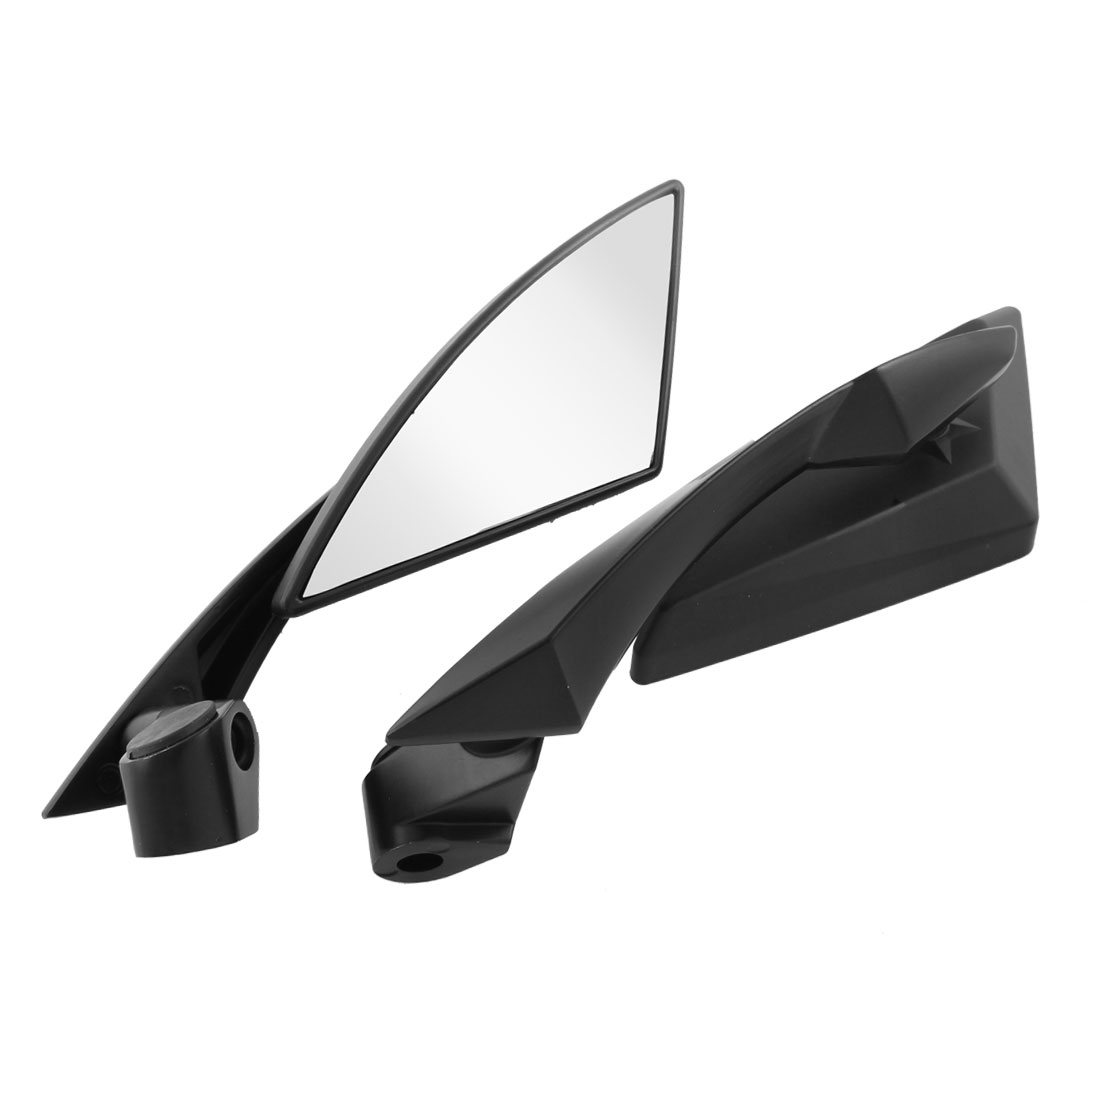 2 Pcs Black Plastic Frame Triangular Shaped Motorcycle Rear View Mirrors